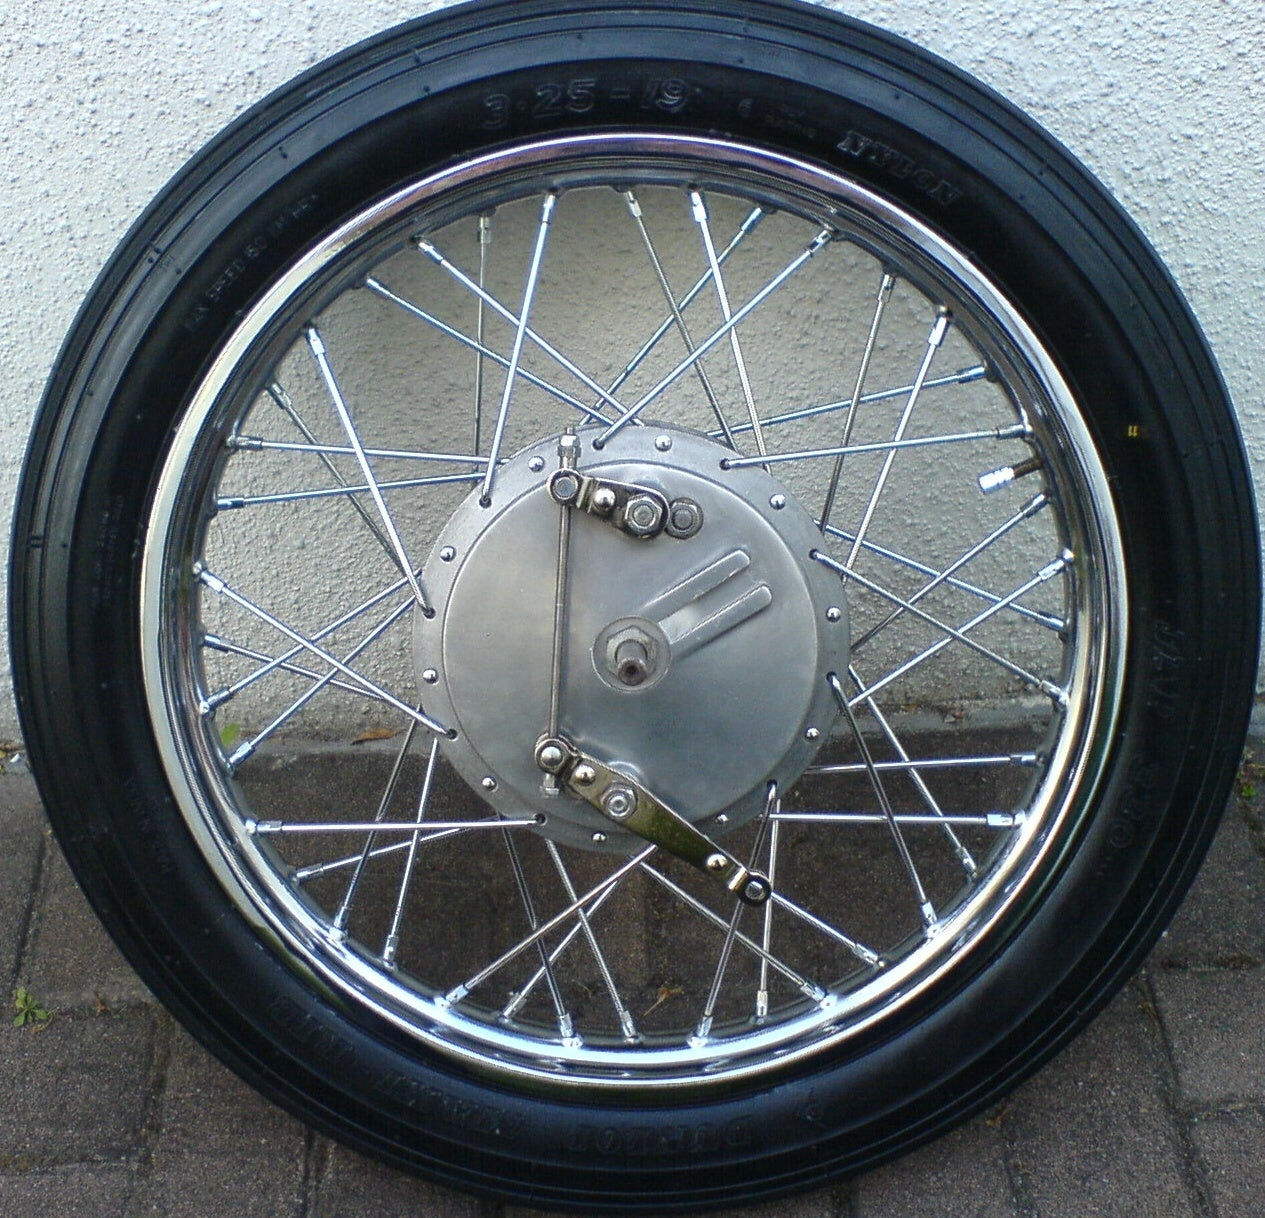 Rebuilding a Spoked Wheel for the Royal Enfield Bullet: 16 Steps